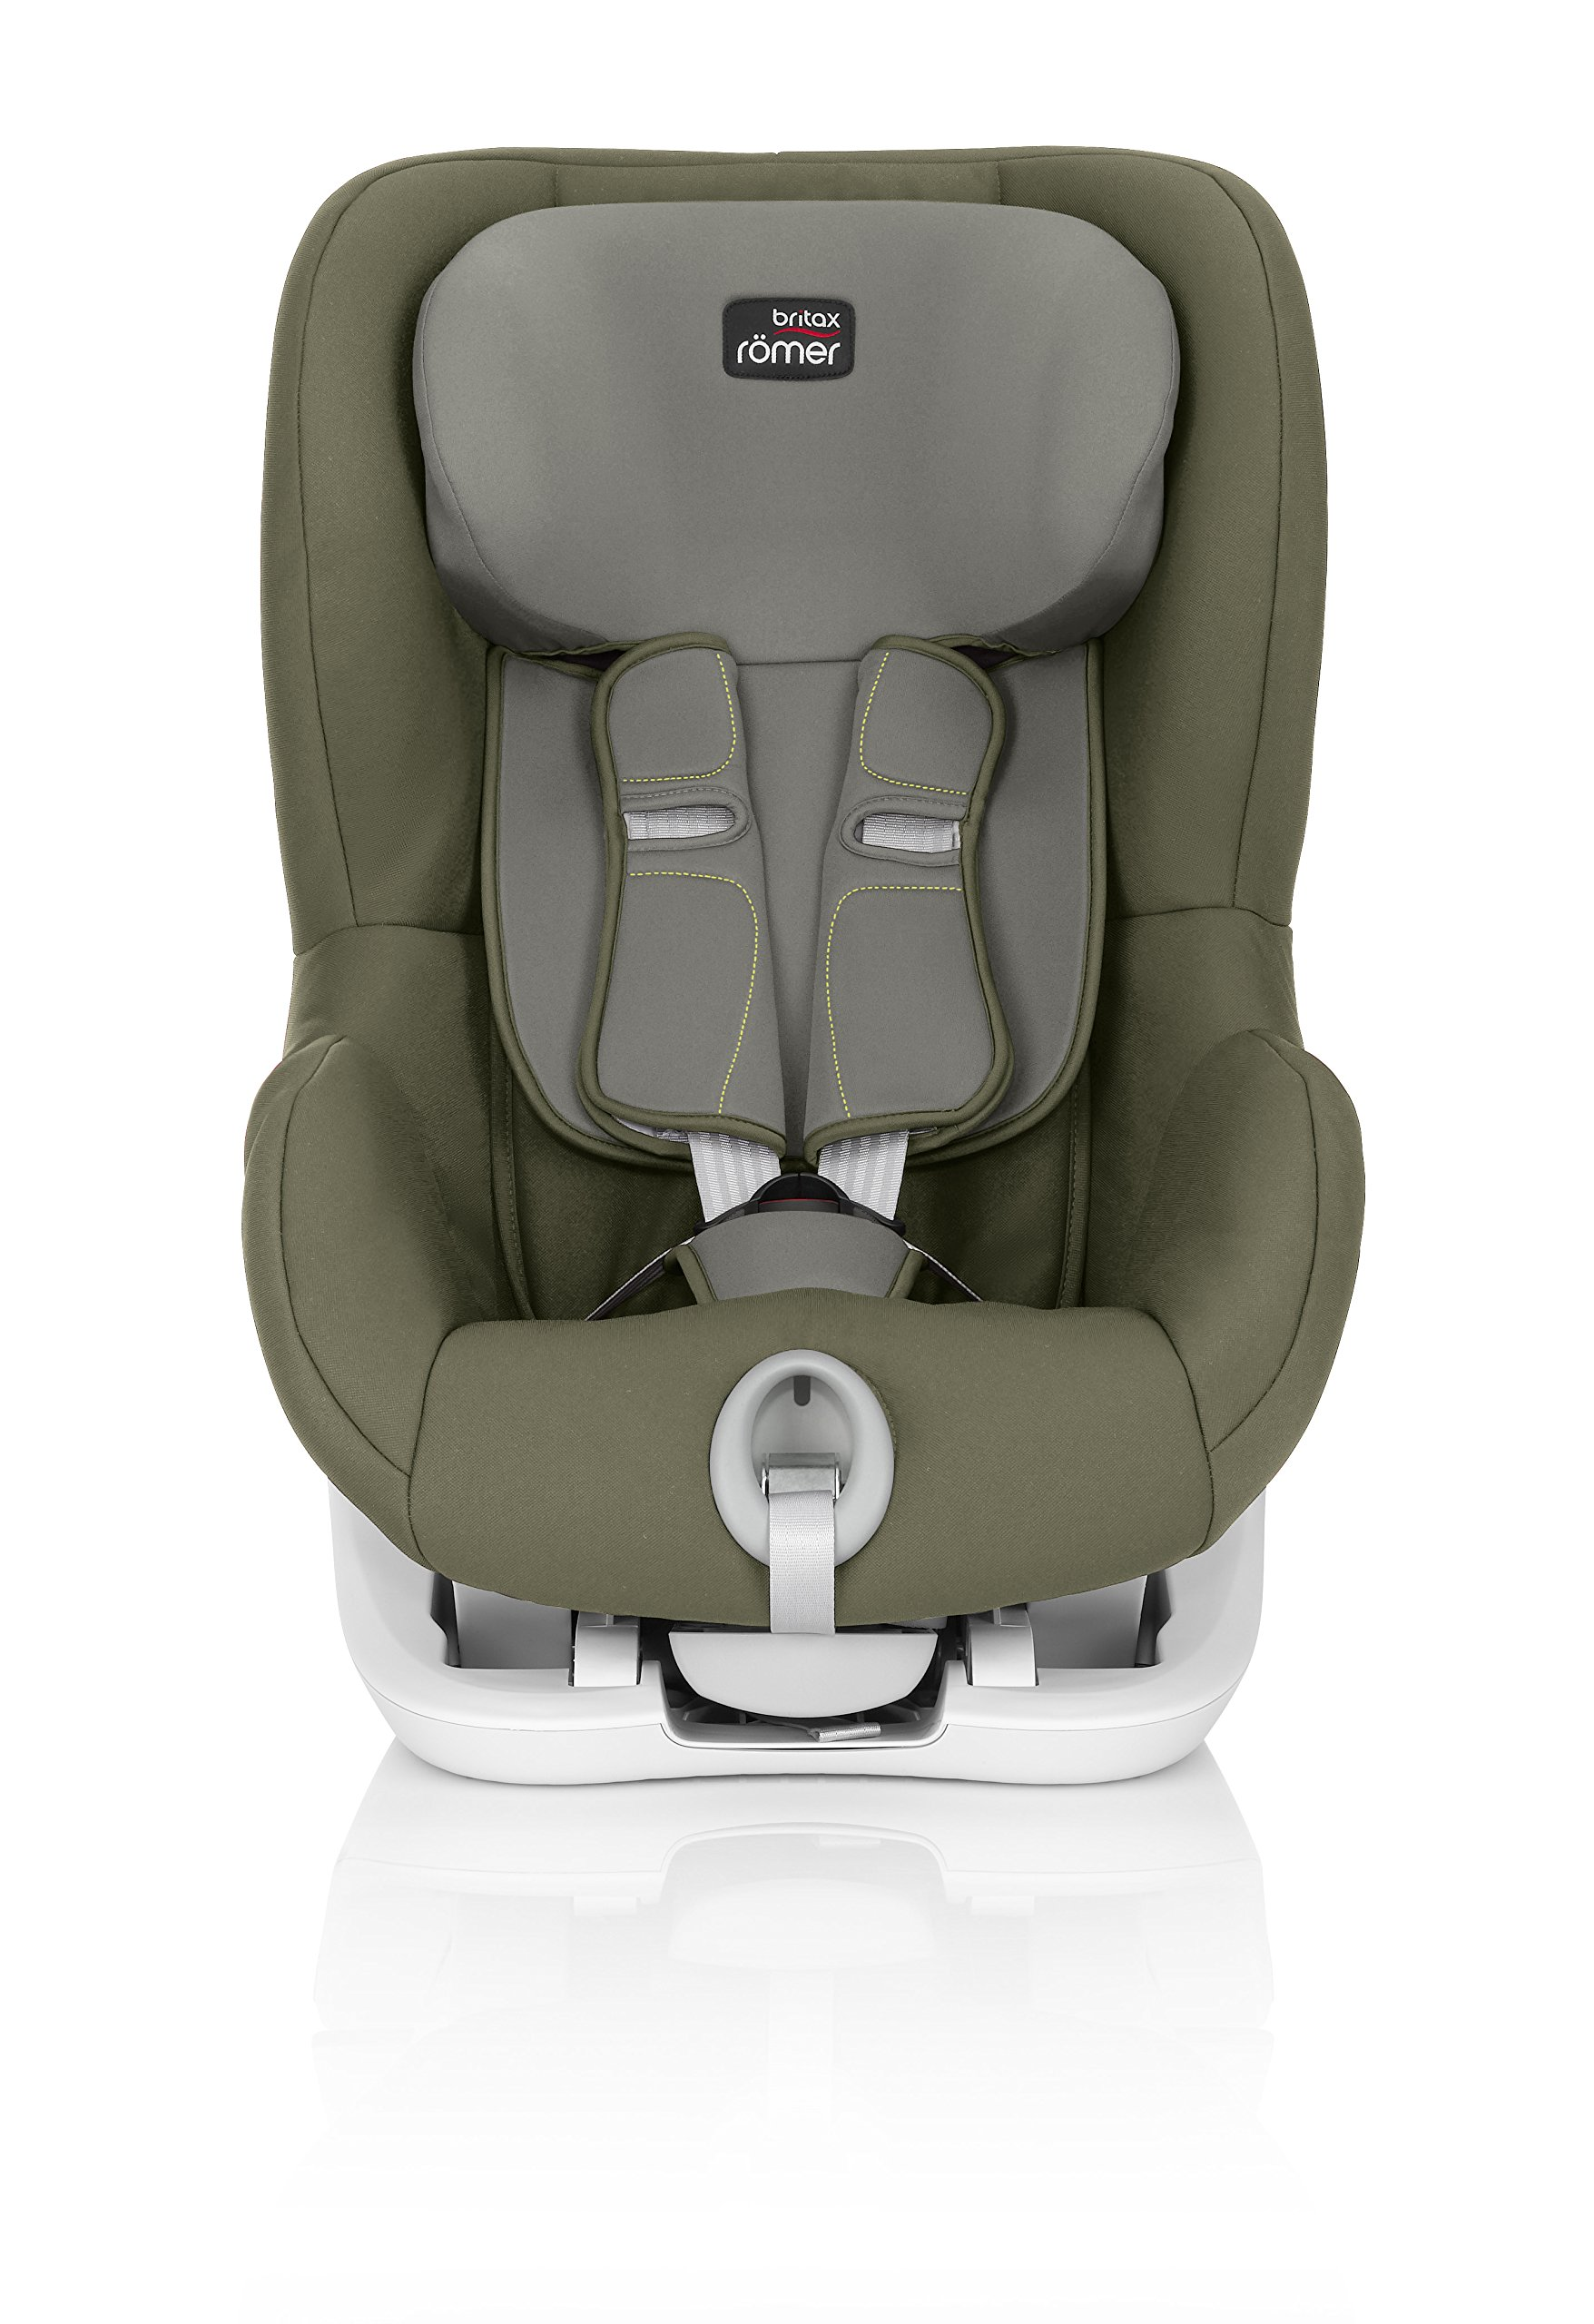 Britax Römer King II Car Seat, Olive Green Britax Römer Easy installation - with tilting seat and patented seat belt tensioning system Optimum protection - performance chest pads, deep, padded side wings 3